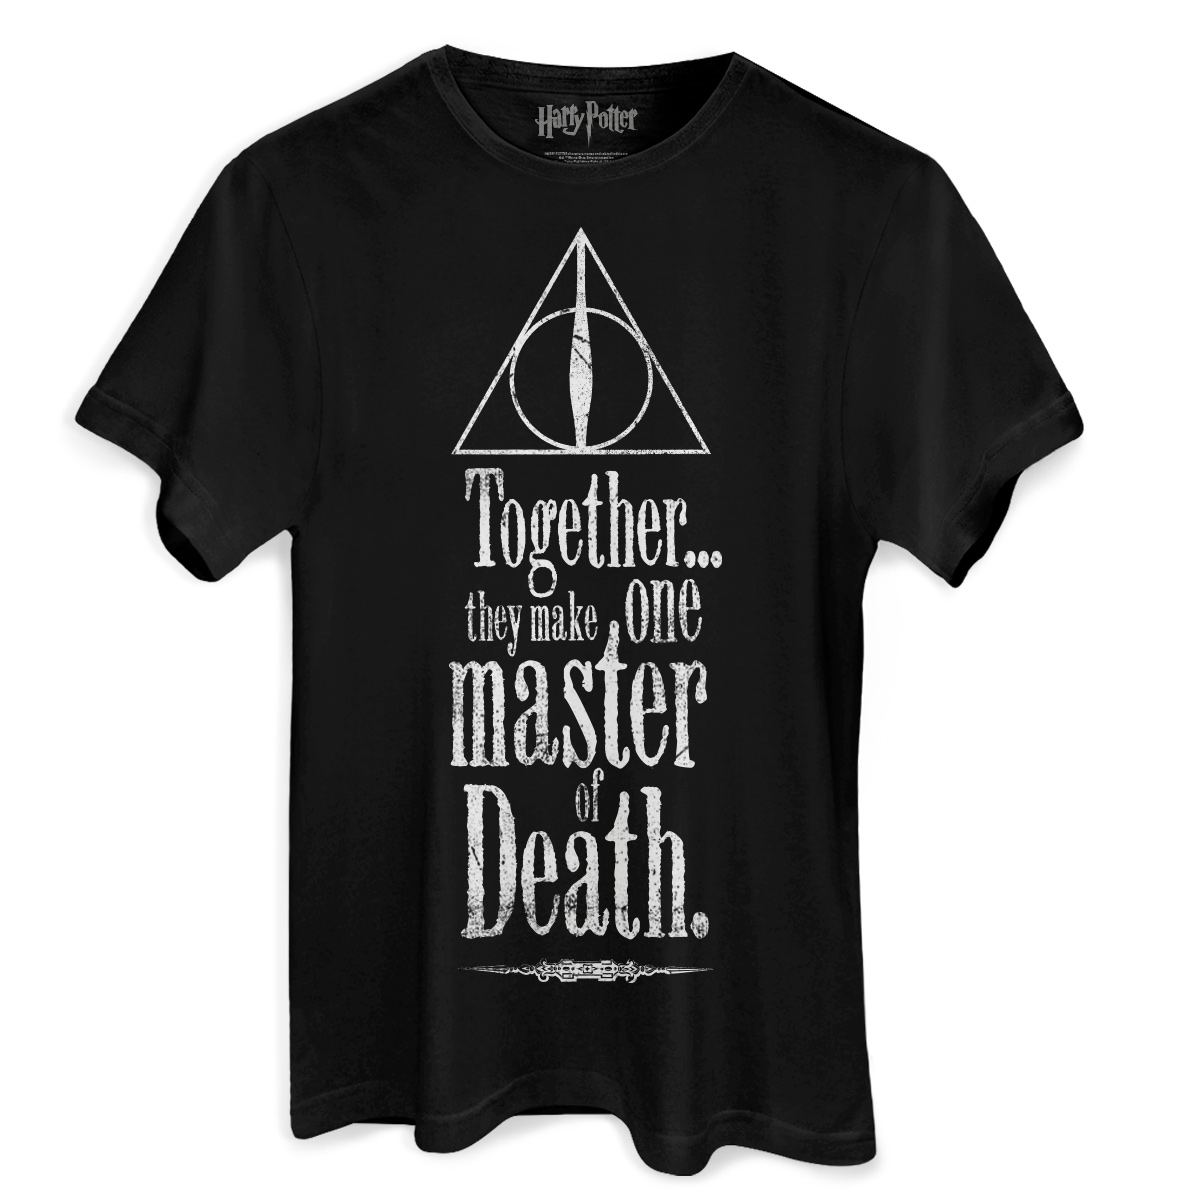 Camiseta Masculina Harry Potter The Deathly Hallows  - bandUP Store Marketplace